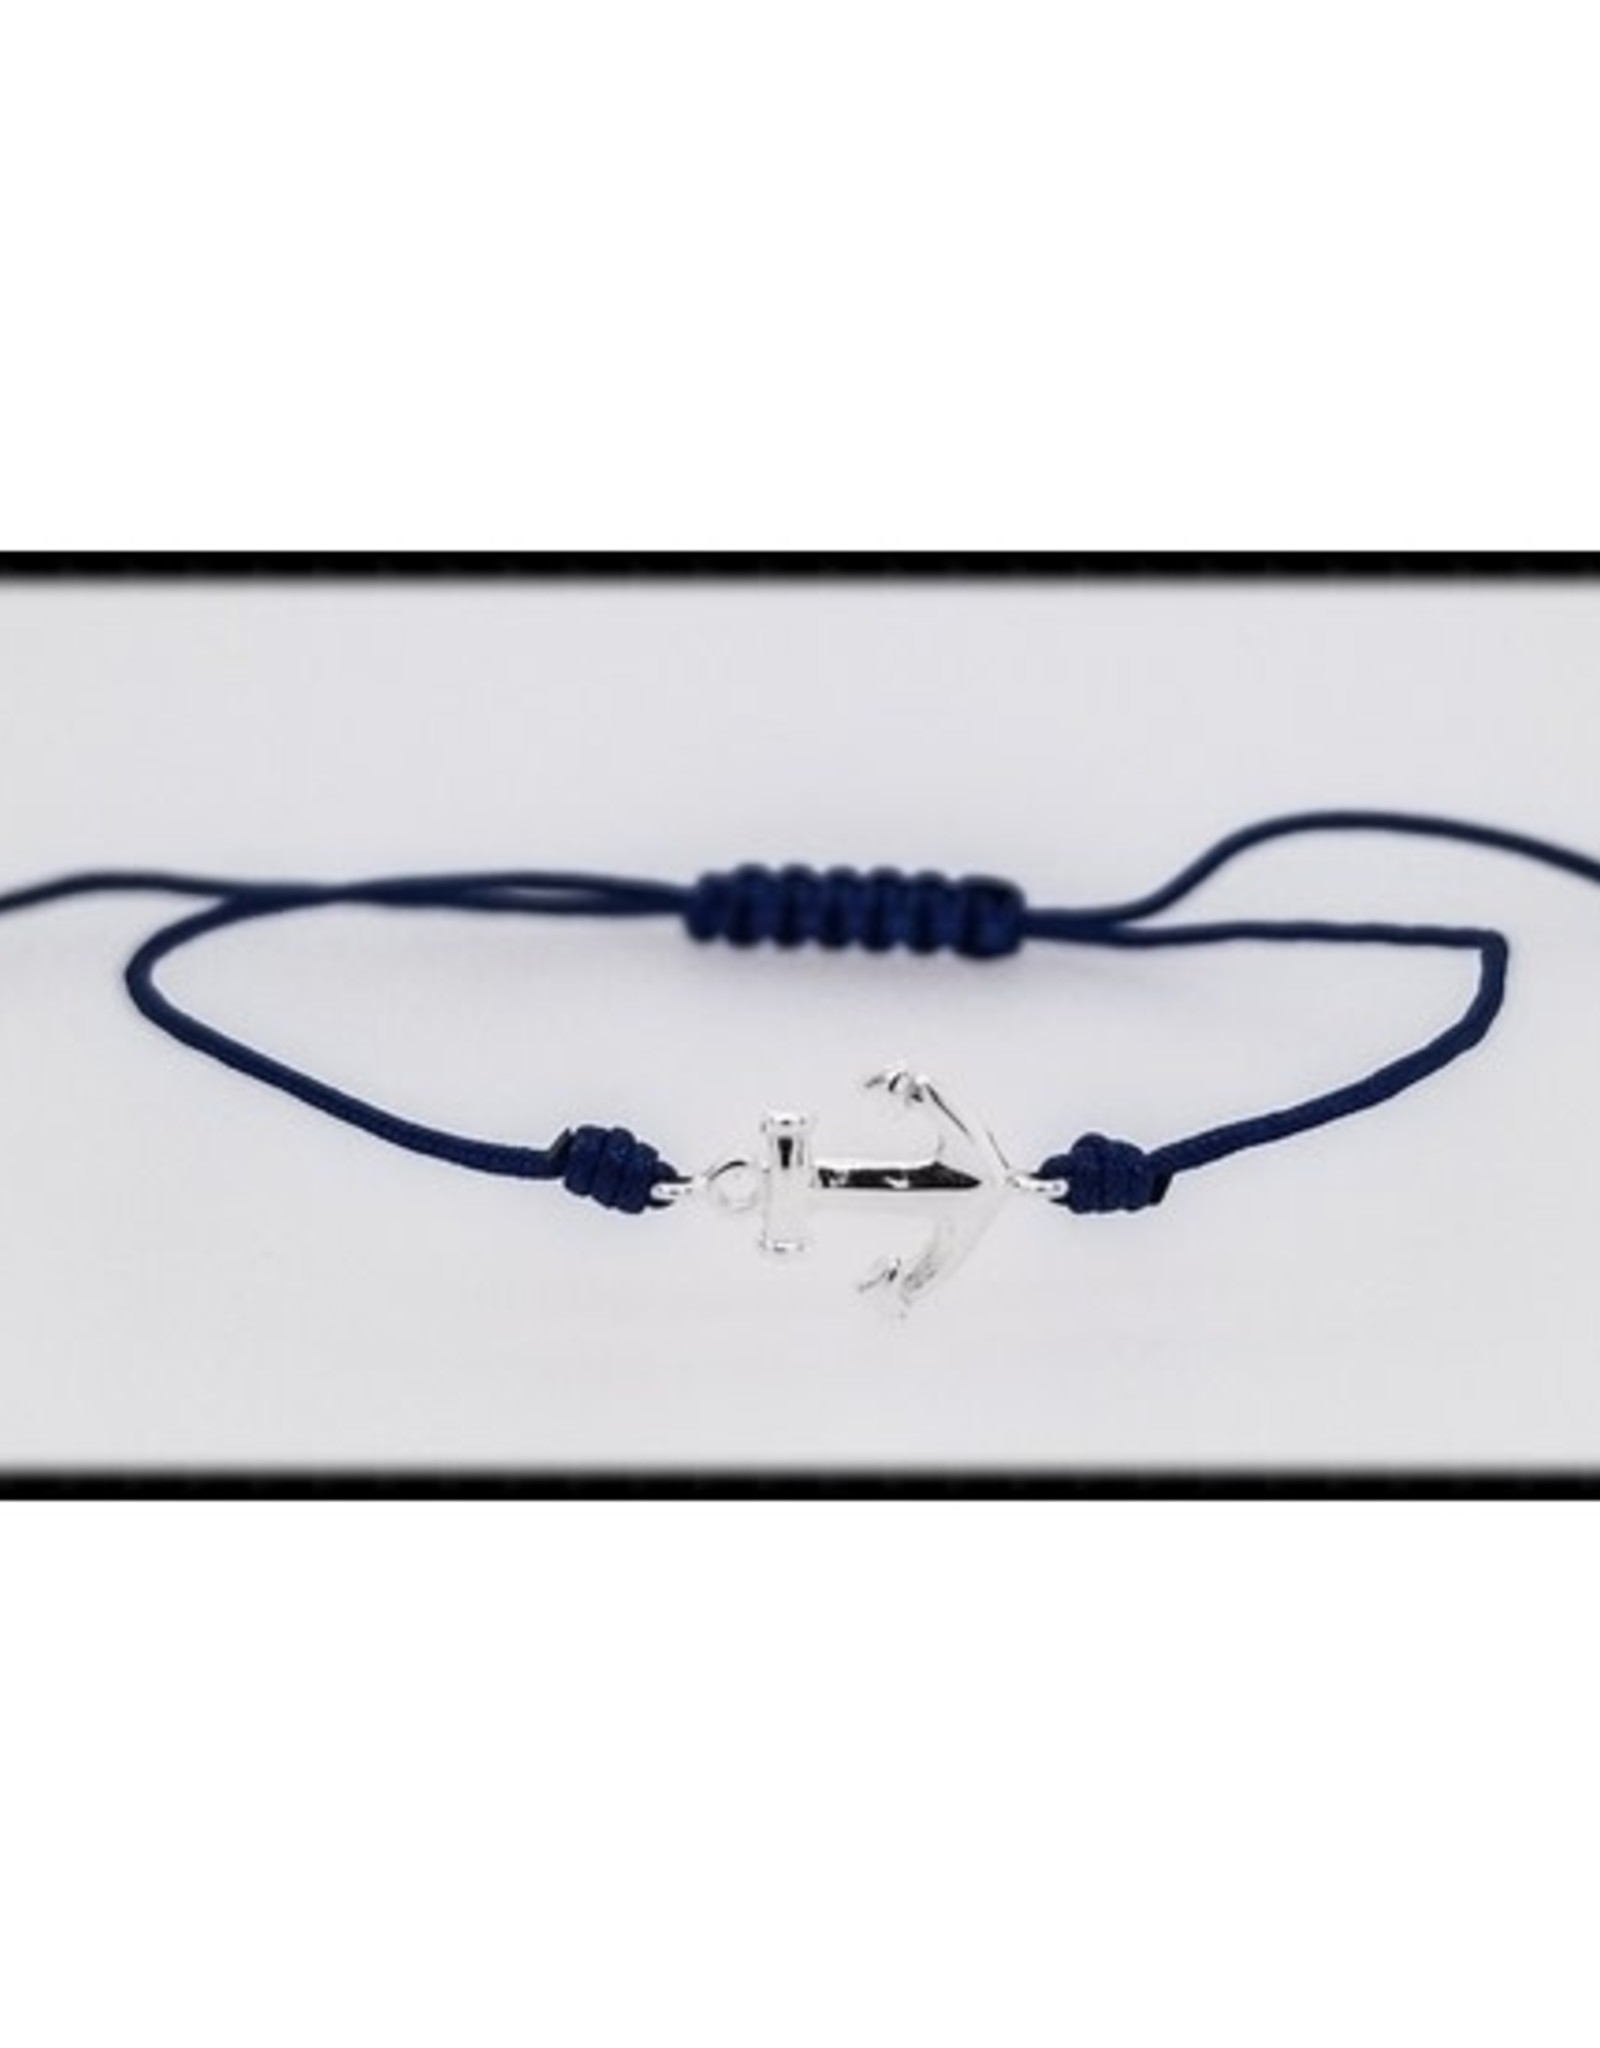 The Beaded Wire Adjustable Cord Bracelet - Anchor